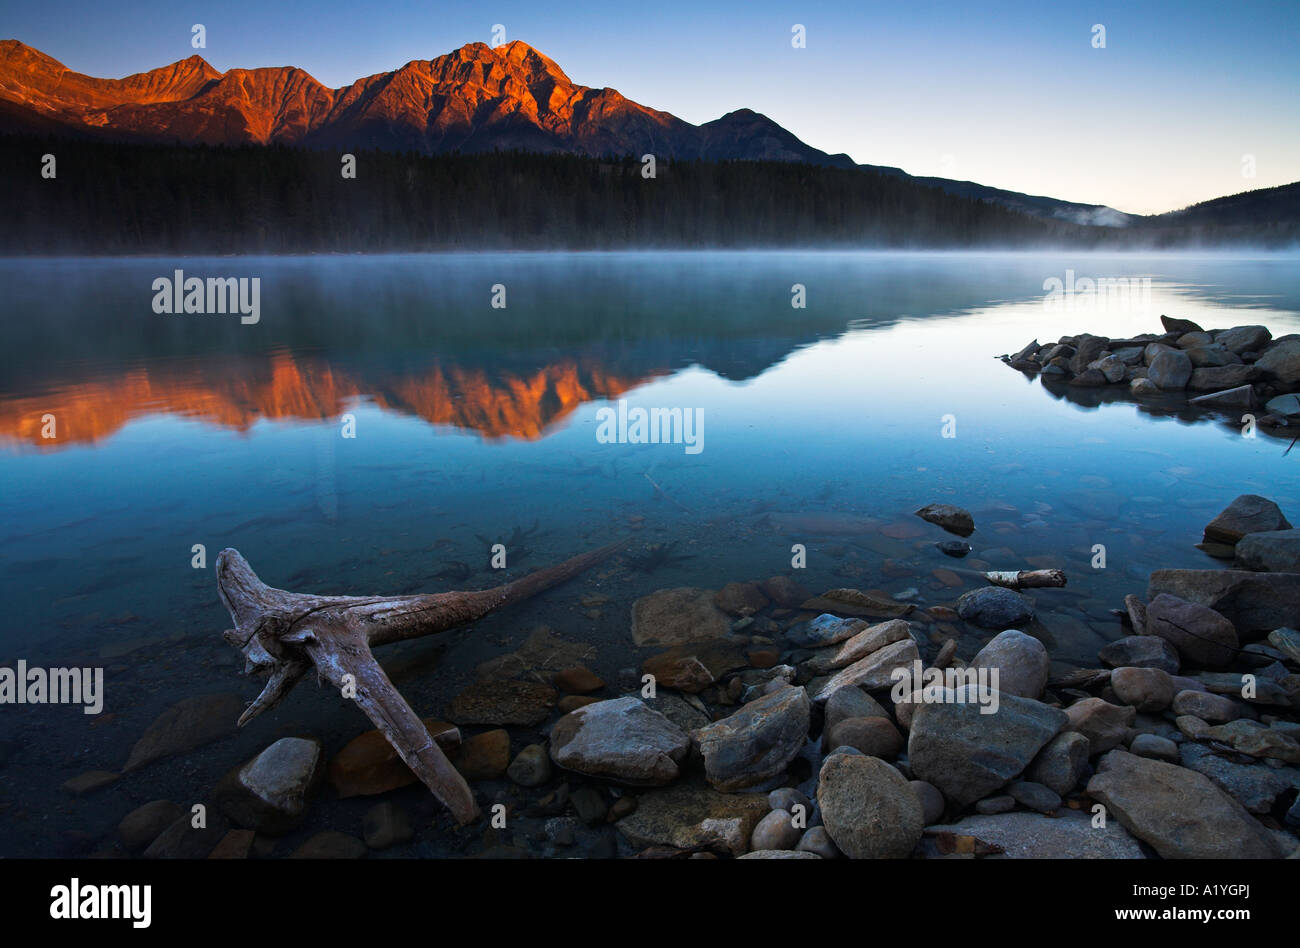 First light on the mountainside over a cold and misty Patricia Lake, Jasper National Park, Canada - Stock Image